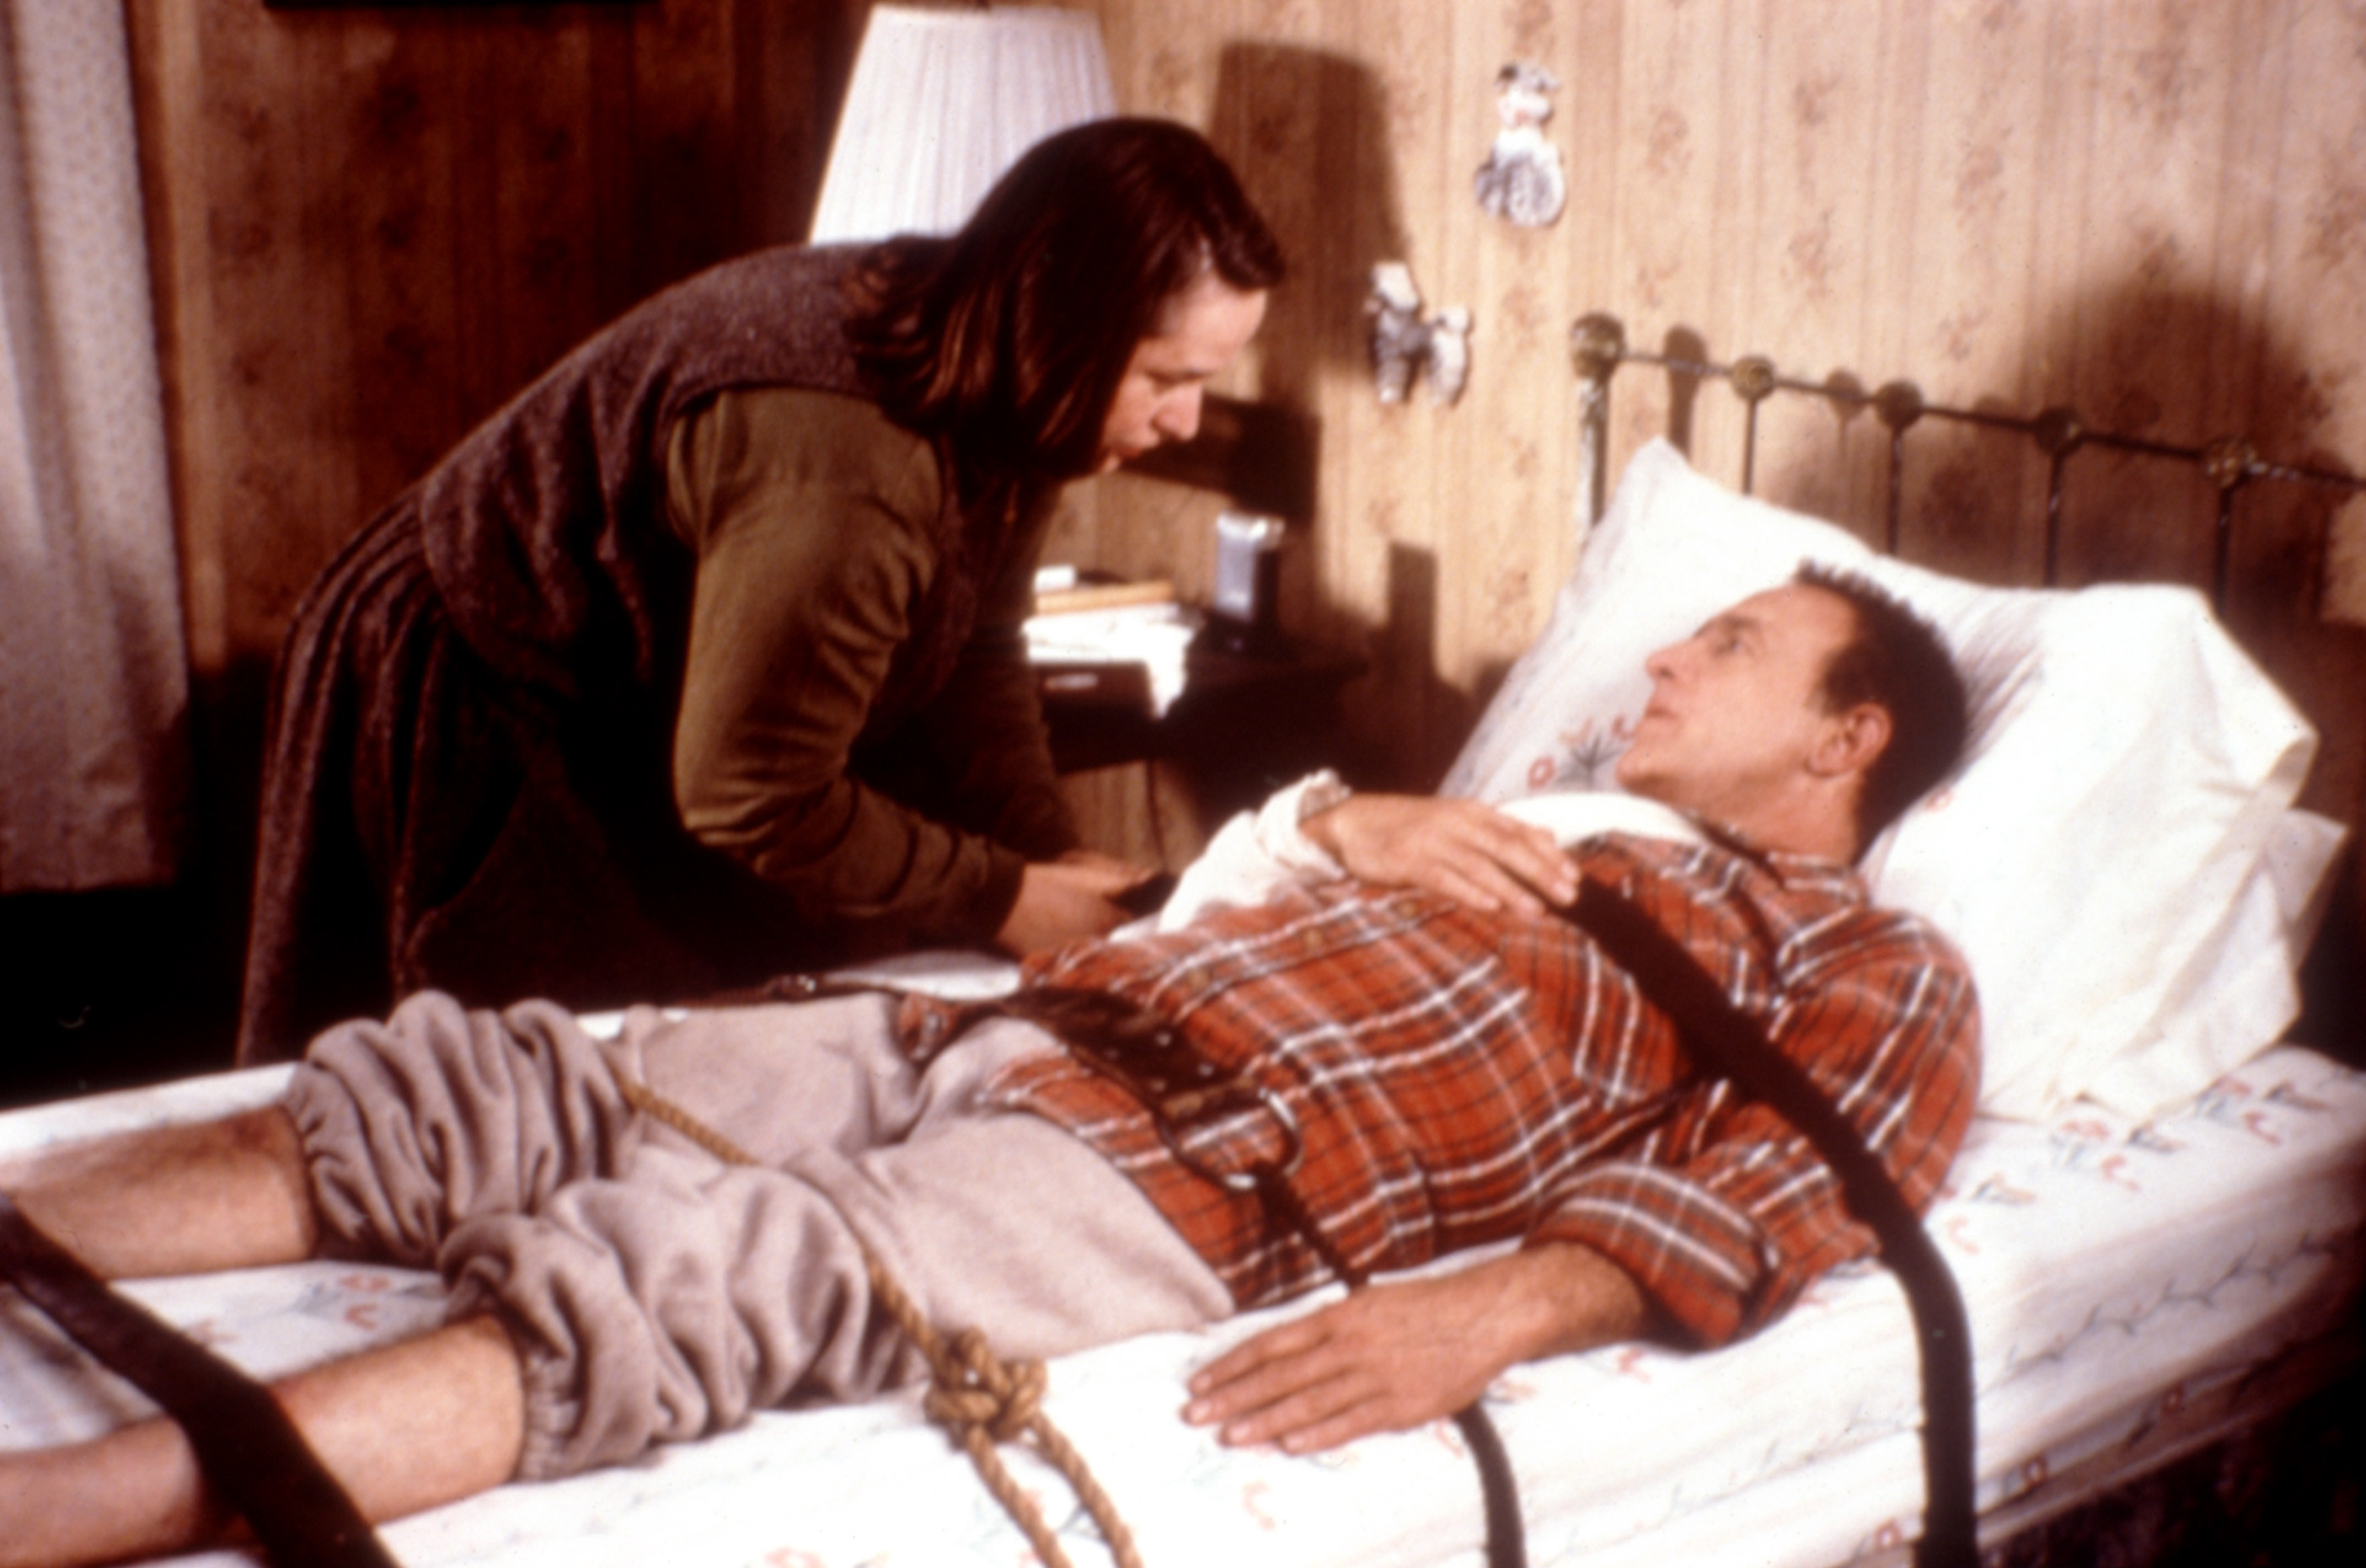 Paul Sheldon tied to a bed by Annie Wilkes